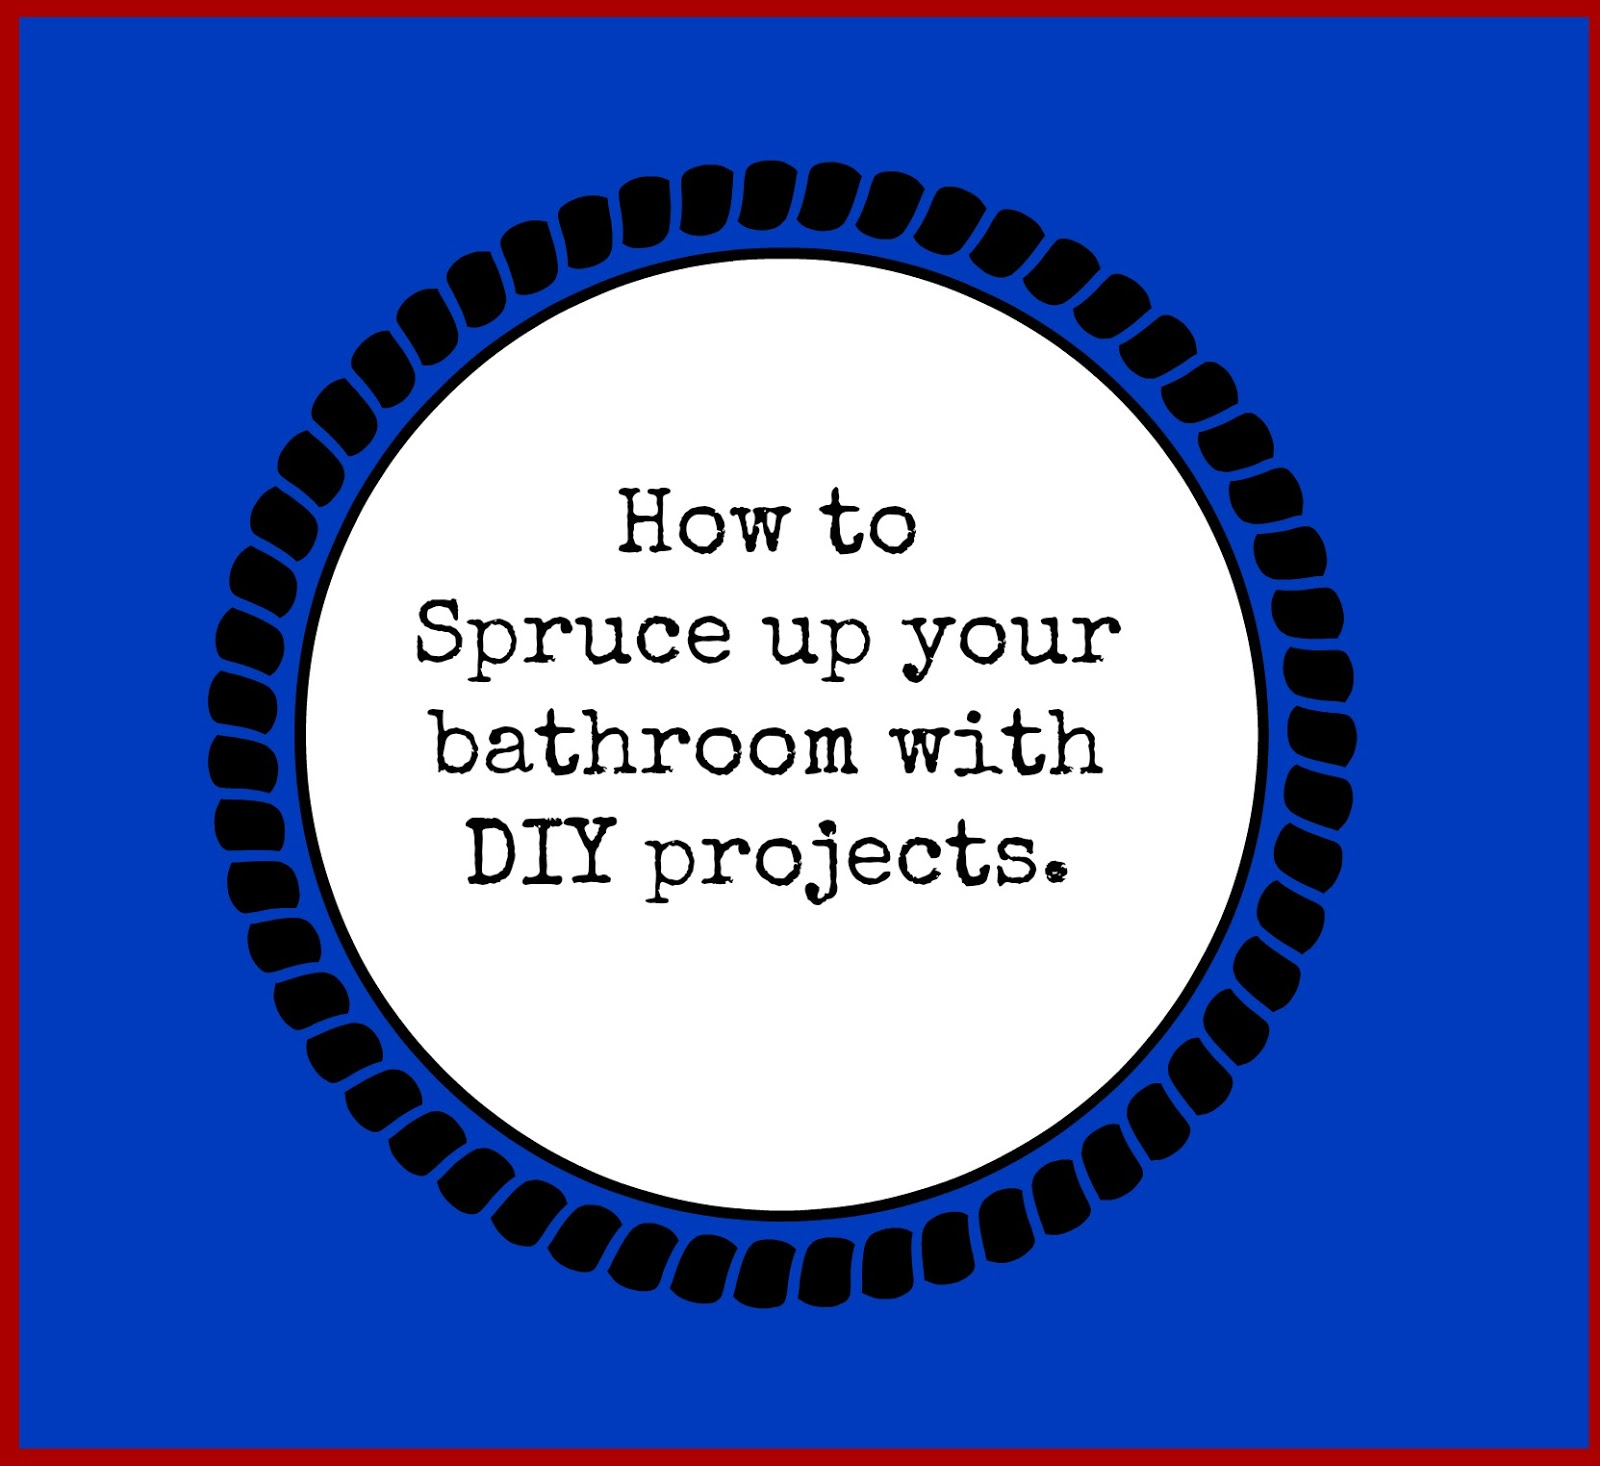 Second Chance To Dream How To Spruce Up Your Bathroom With Diy Projects